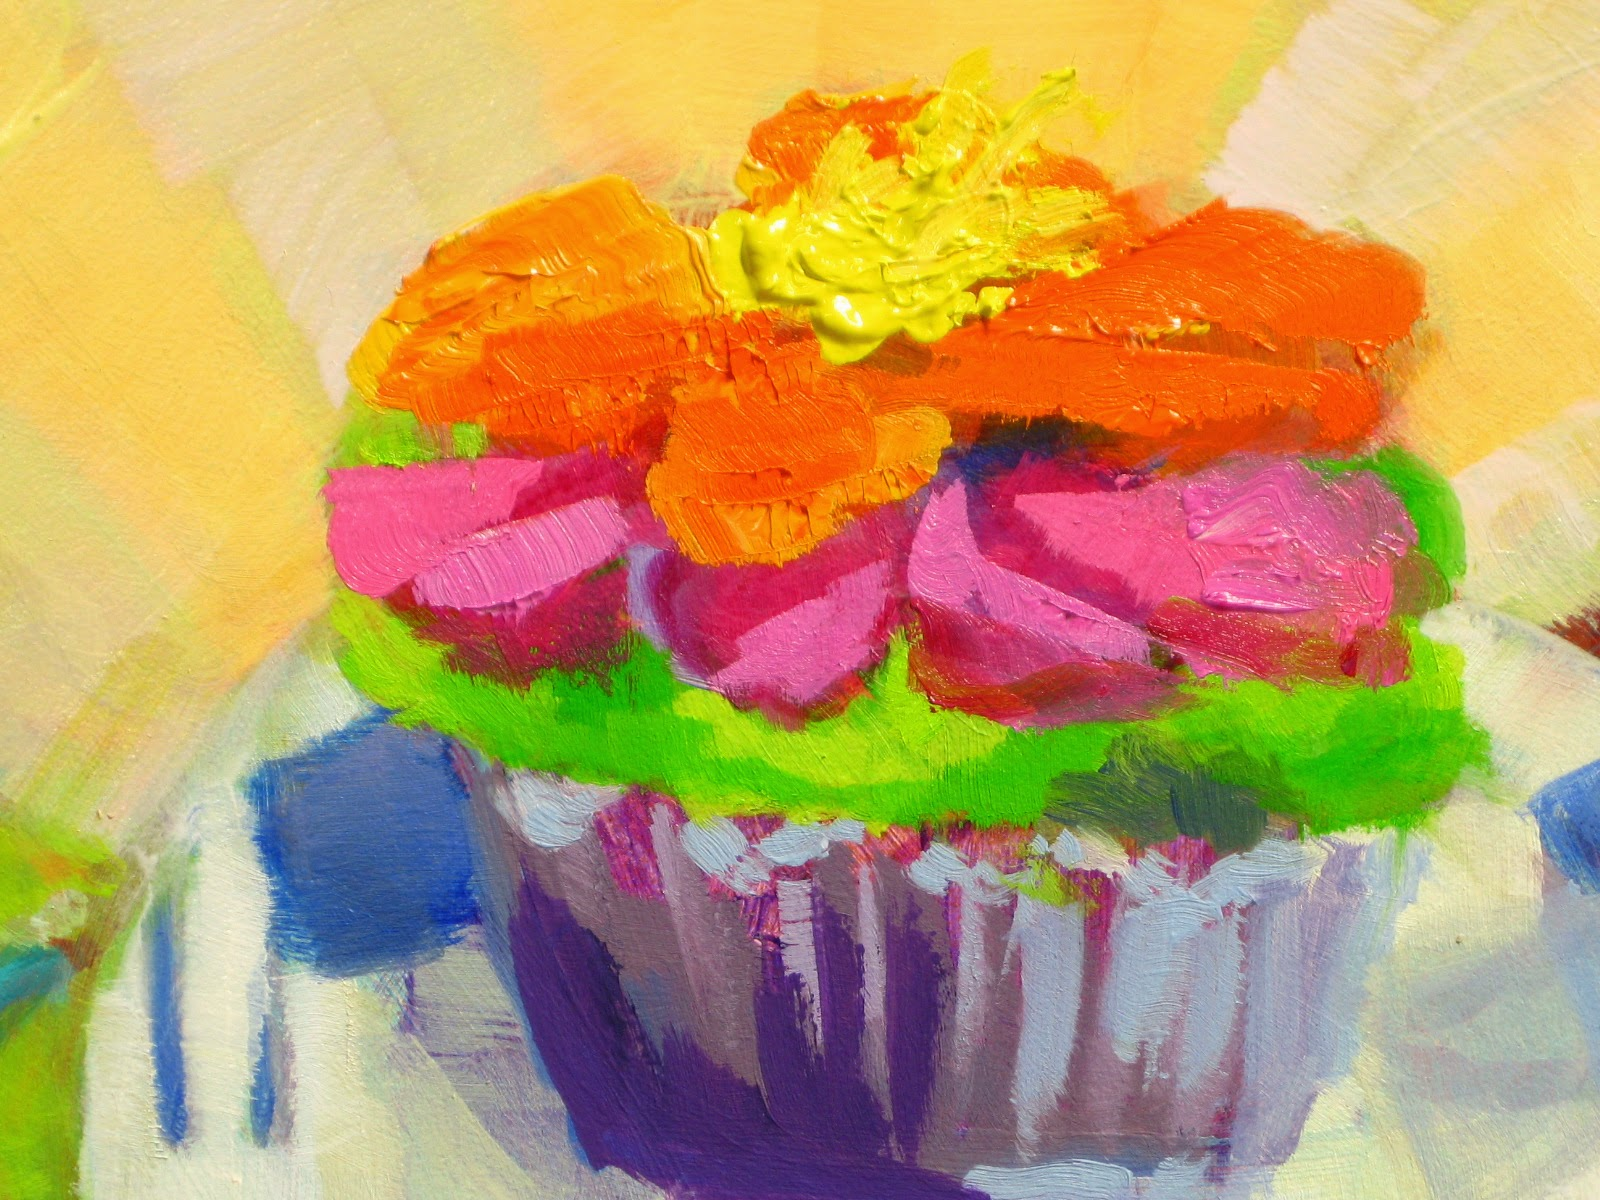 closeup of main part of cupcake oil painting by Joan Terrell